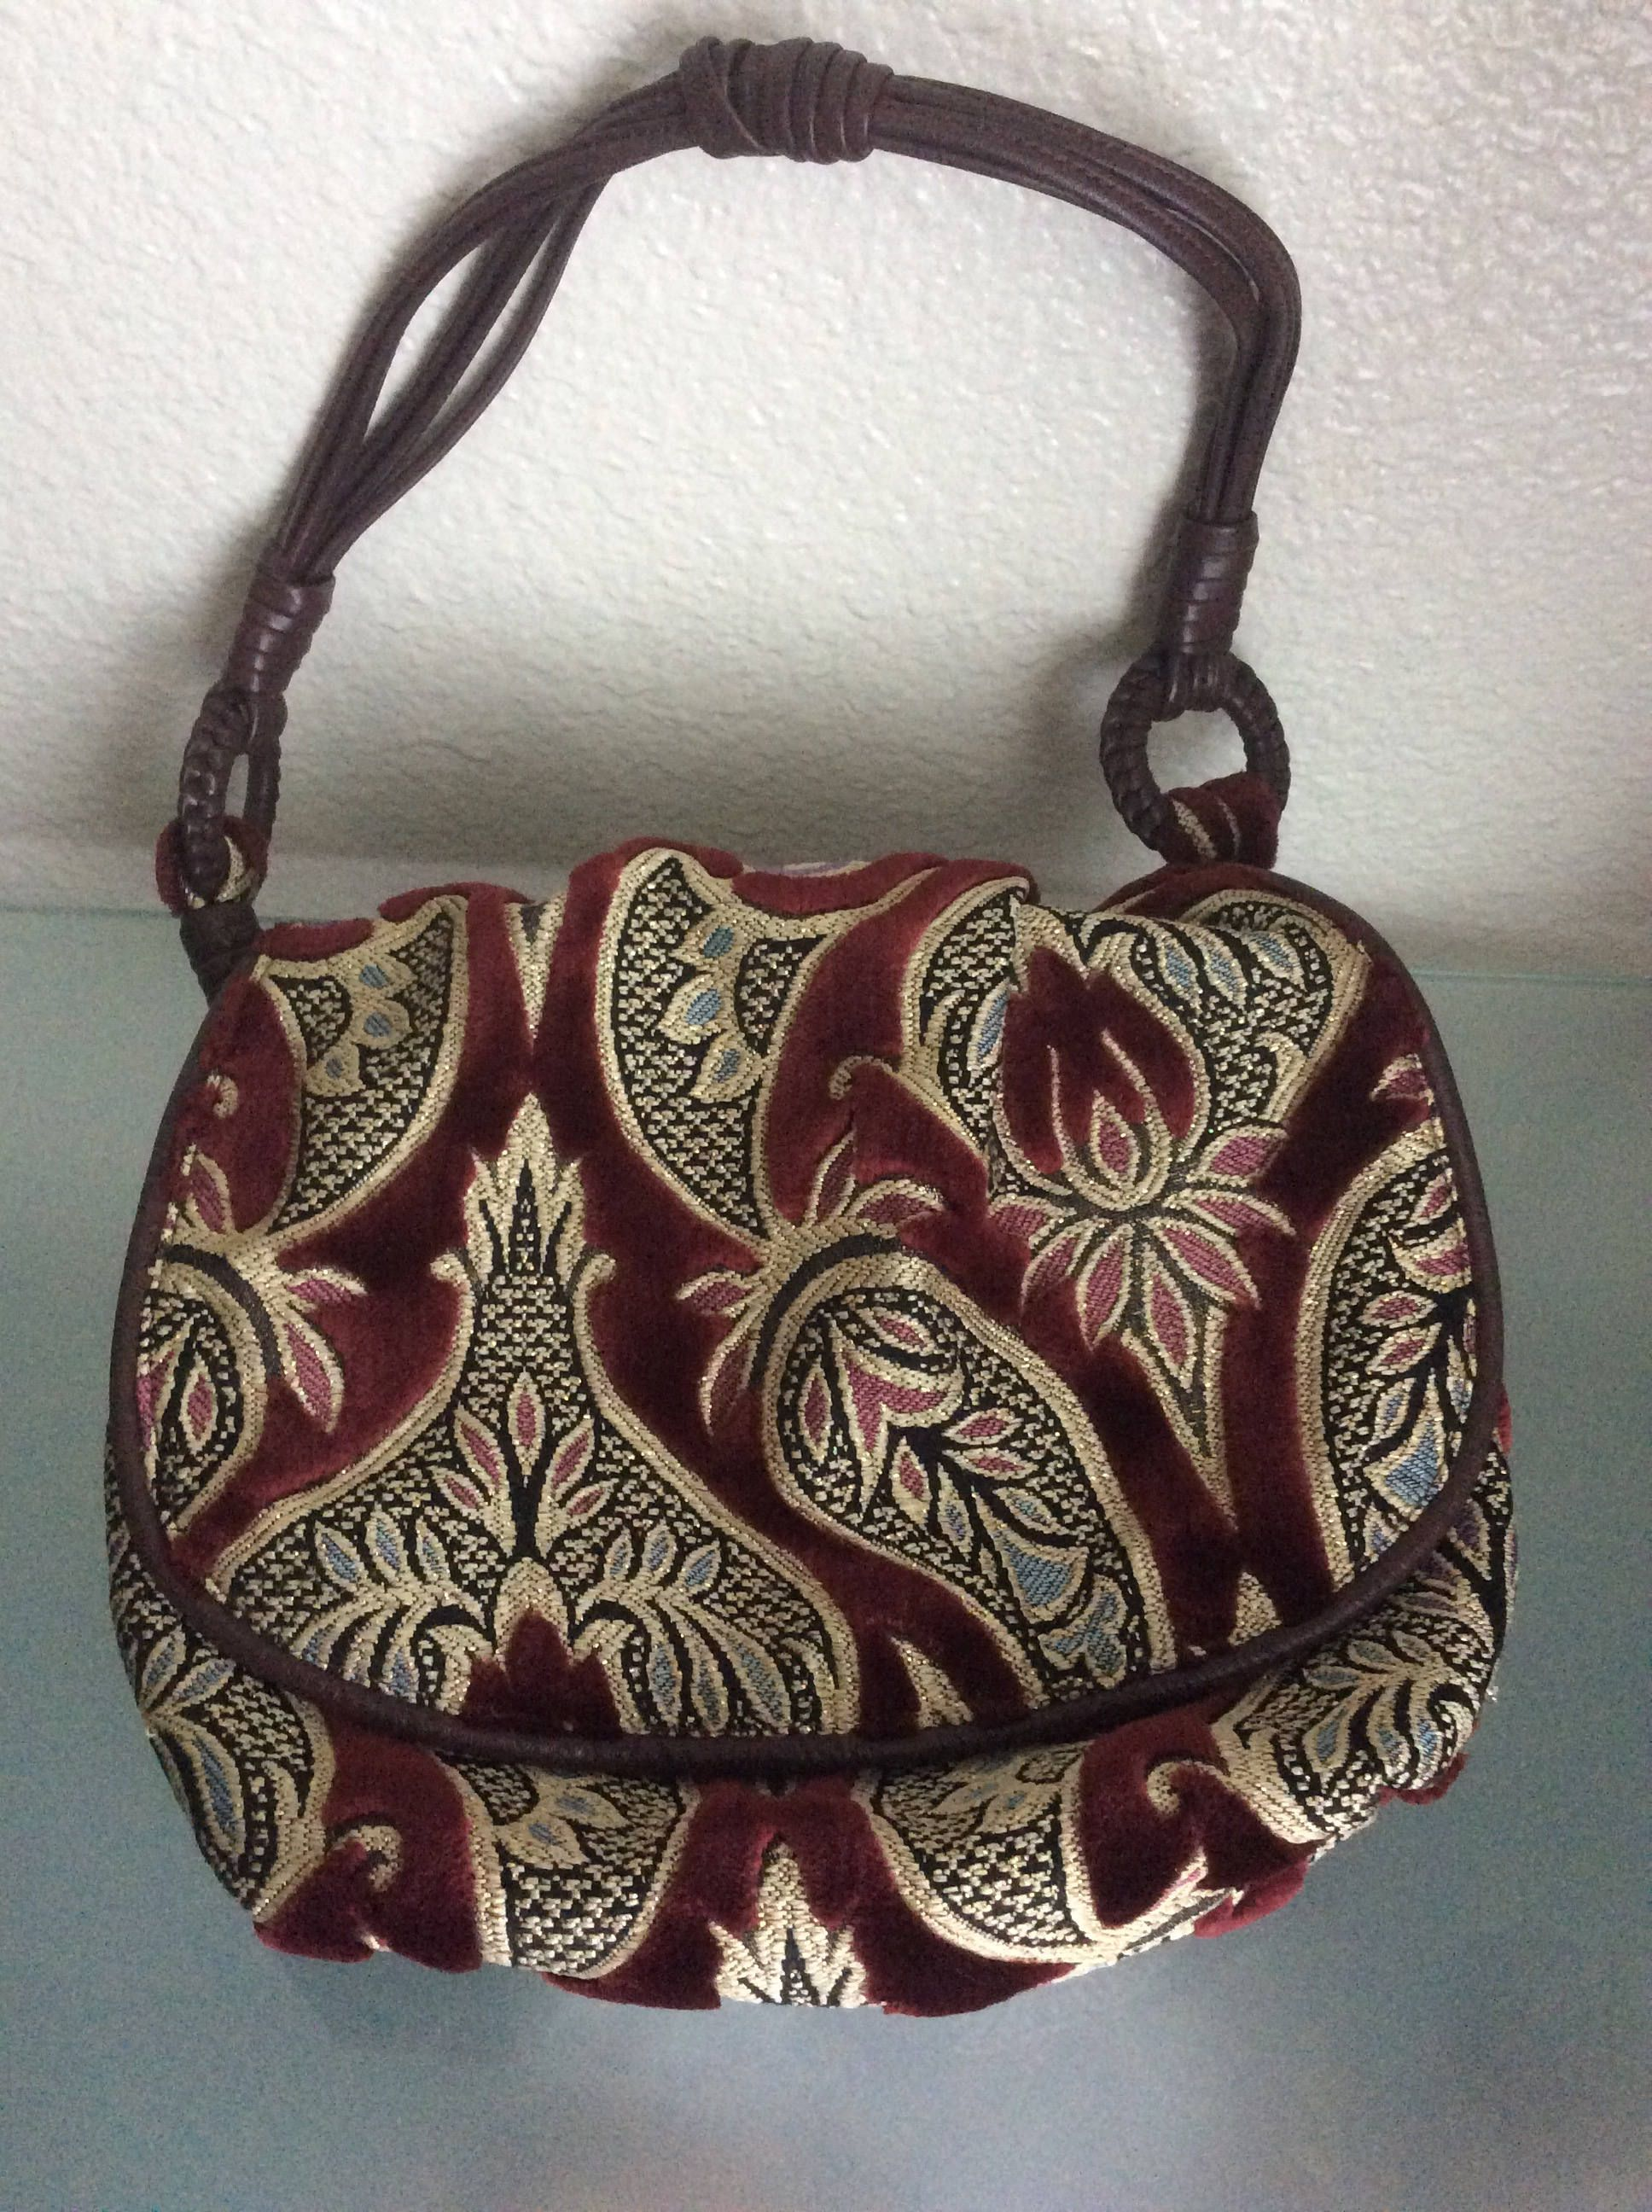 Womens Maxx Ny Hand Bag Hobo Floral Paisley Wine Gold Fabric Trim Women Genuine Leather Bags By Nalikacraft On Etsy